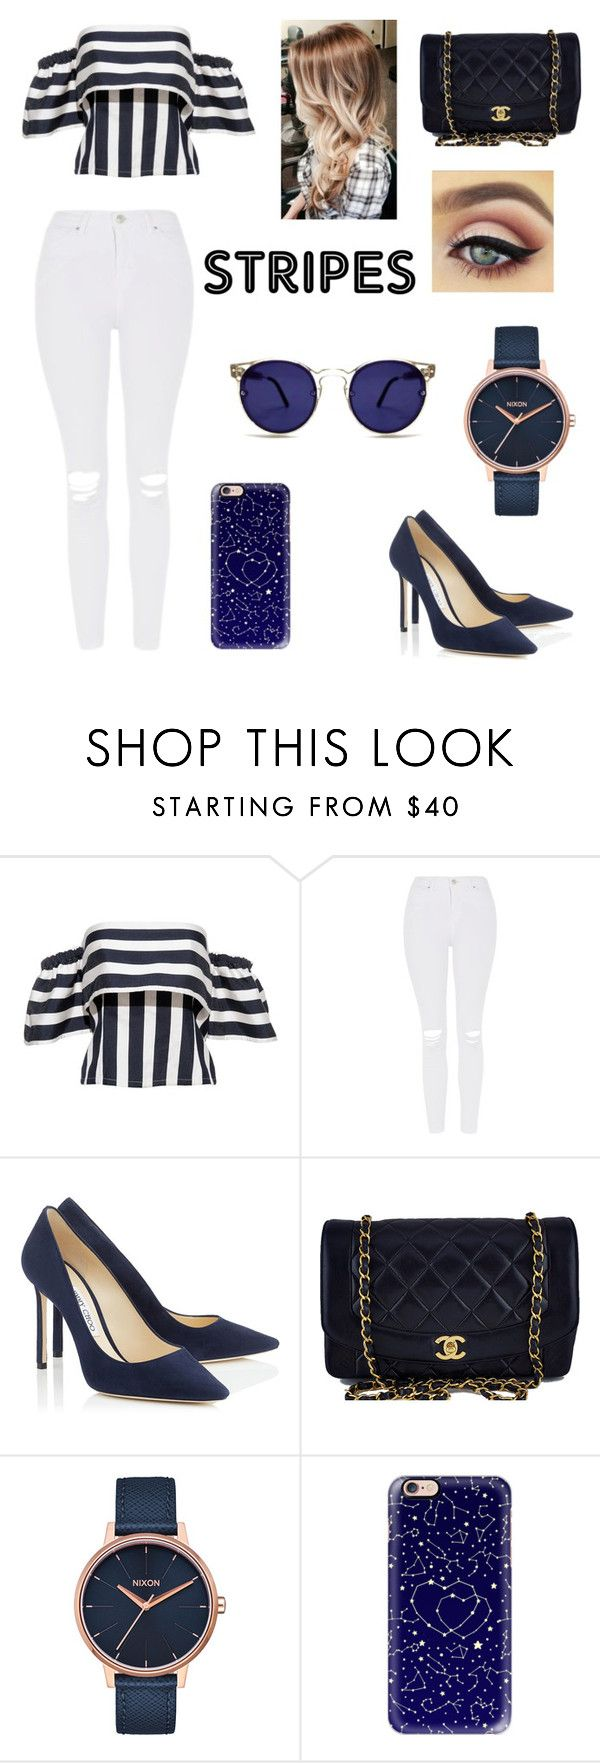 """Untitled #21"" by franck-alexandra-bonnet ❤ liked on Polyvore featuring Topshop, Chanel, Nixon, Casetify and Spitfire"